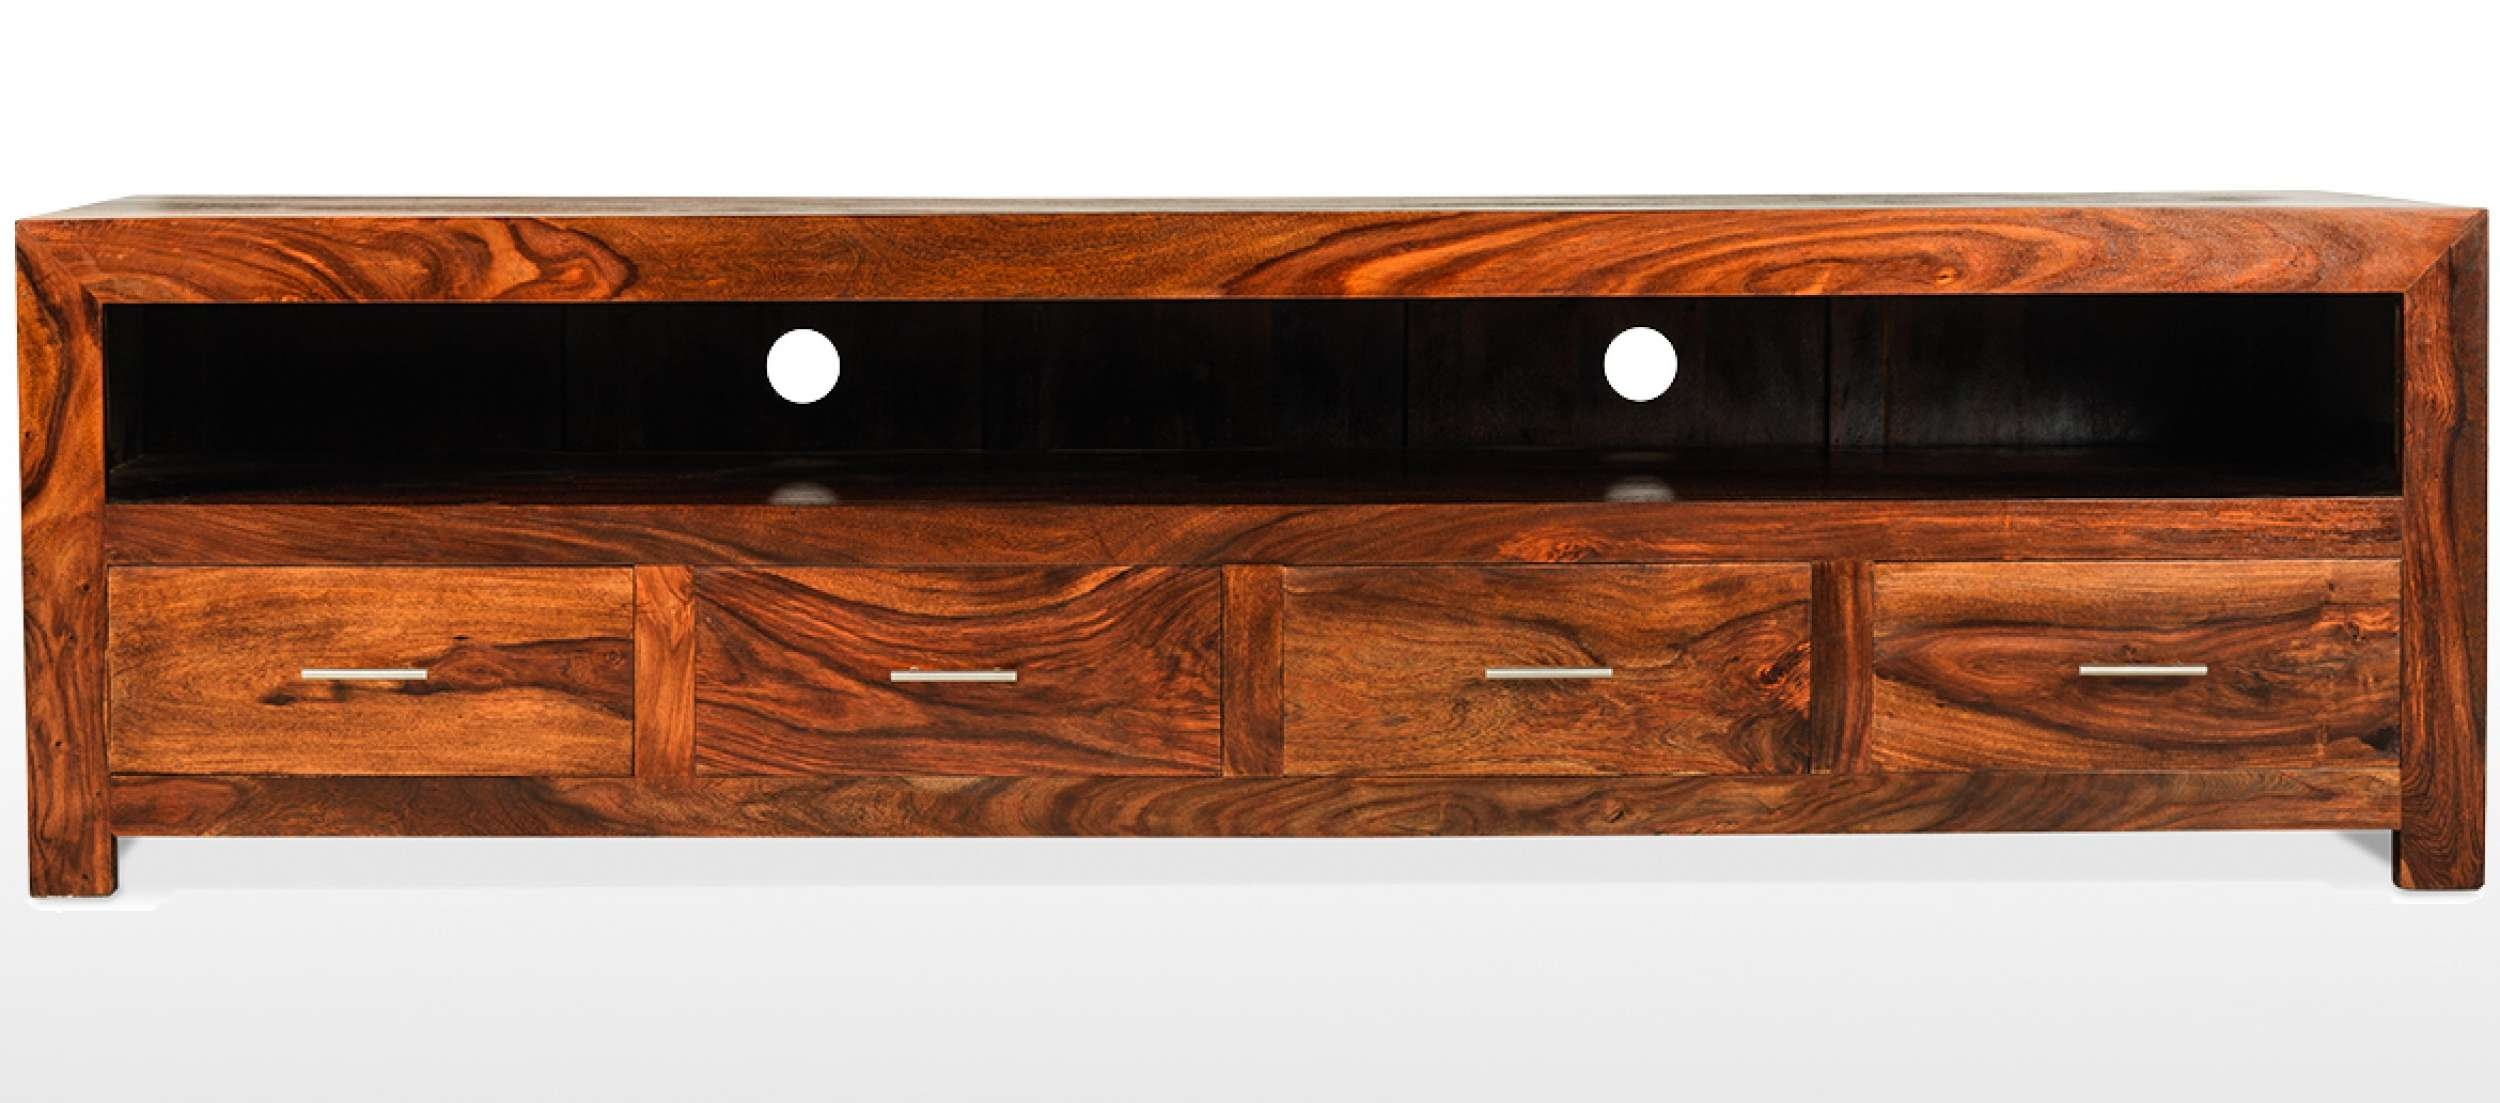 Cube Sheesham Long Plasma Tv Cabinet | Quercus Living With Regard To Sheesham Tv Stands (View 2 of 15)